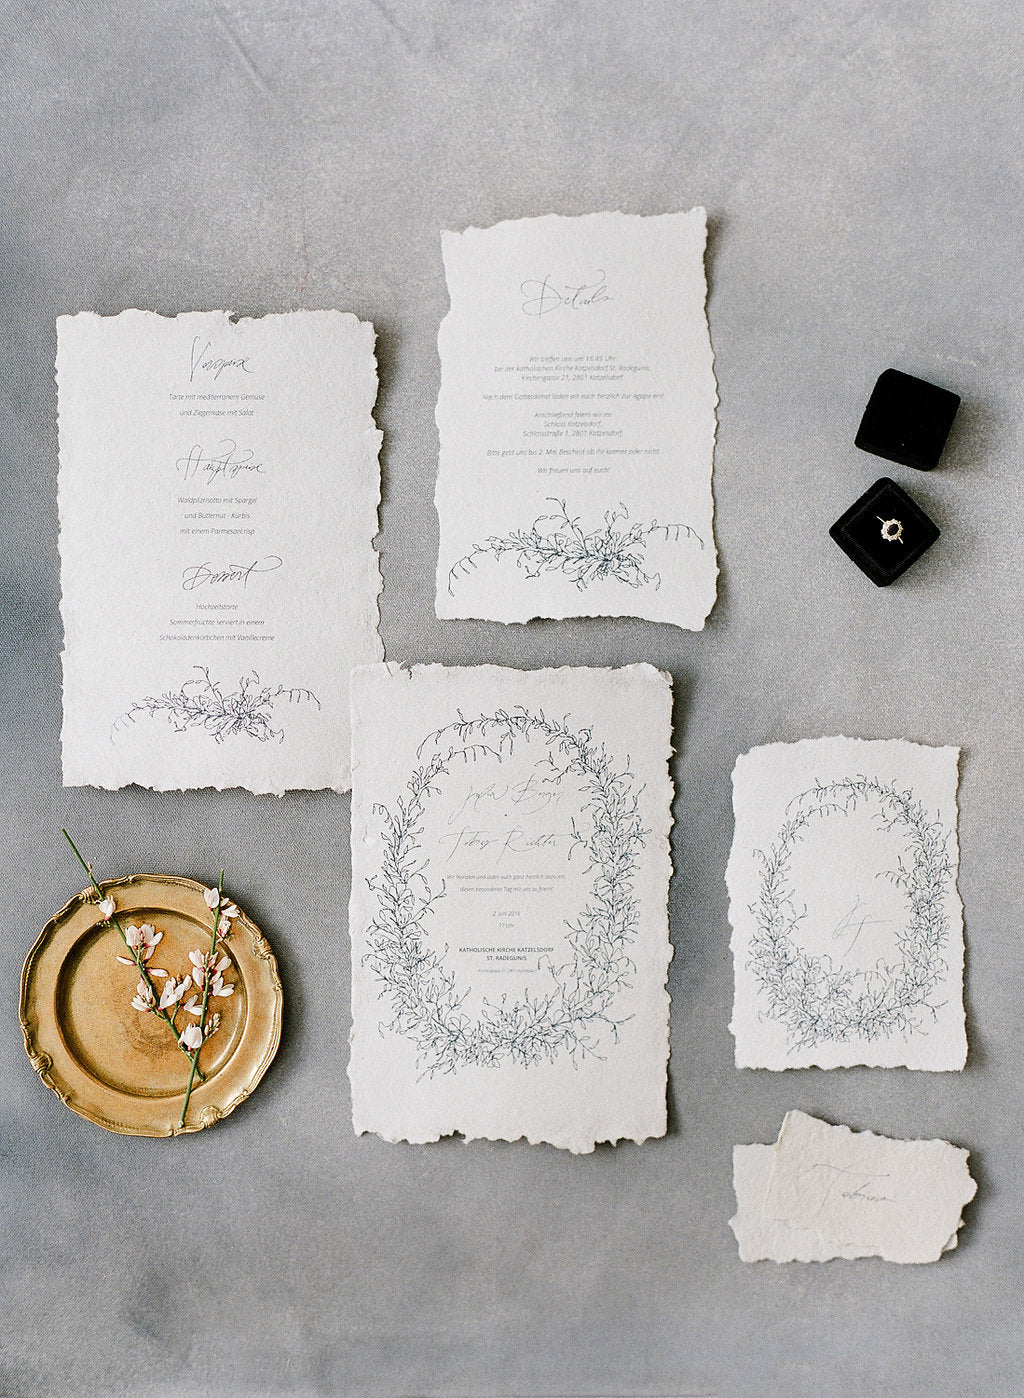 How To Print On Handmade Paper Eliv Rosenkranz